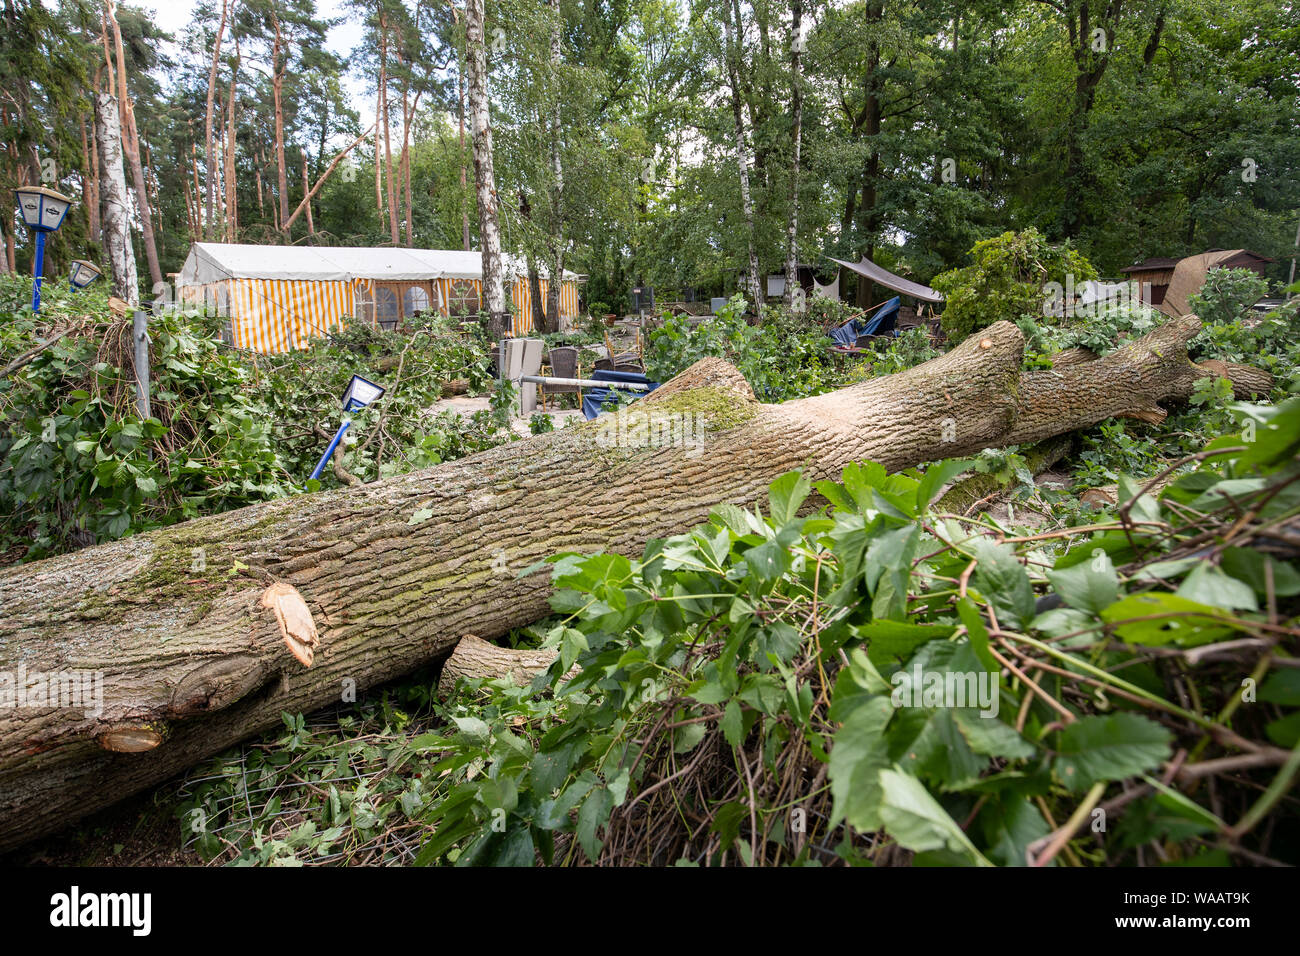 Nuremberg, Germany  19th Aug, 2019  A tree uprooted by a